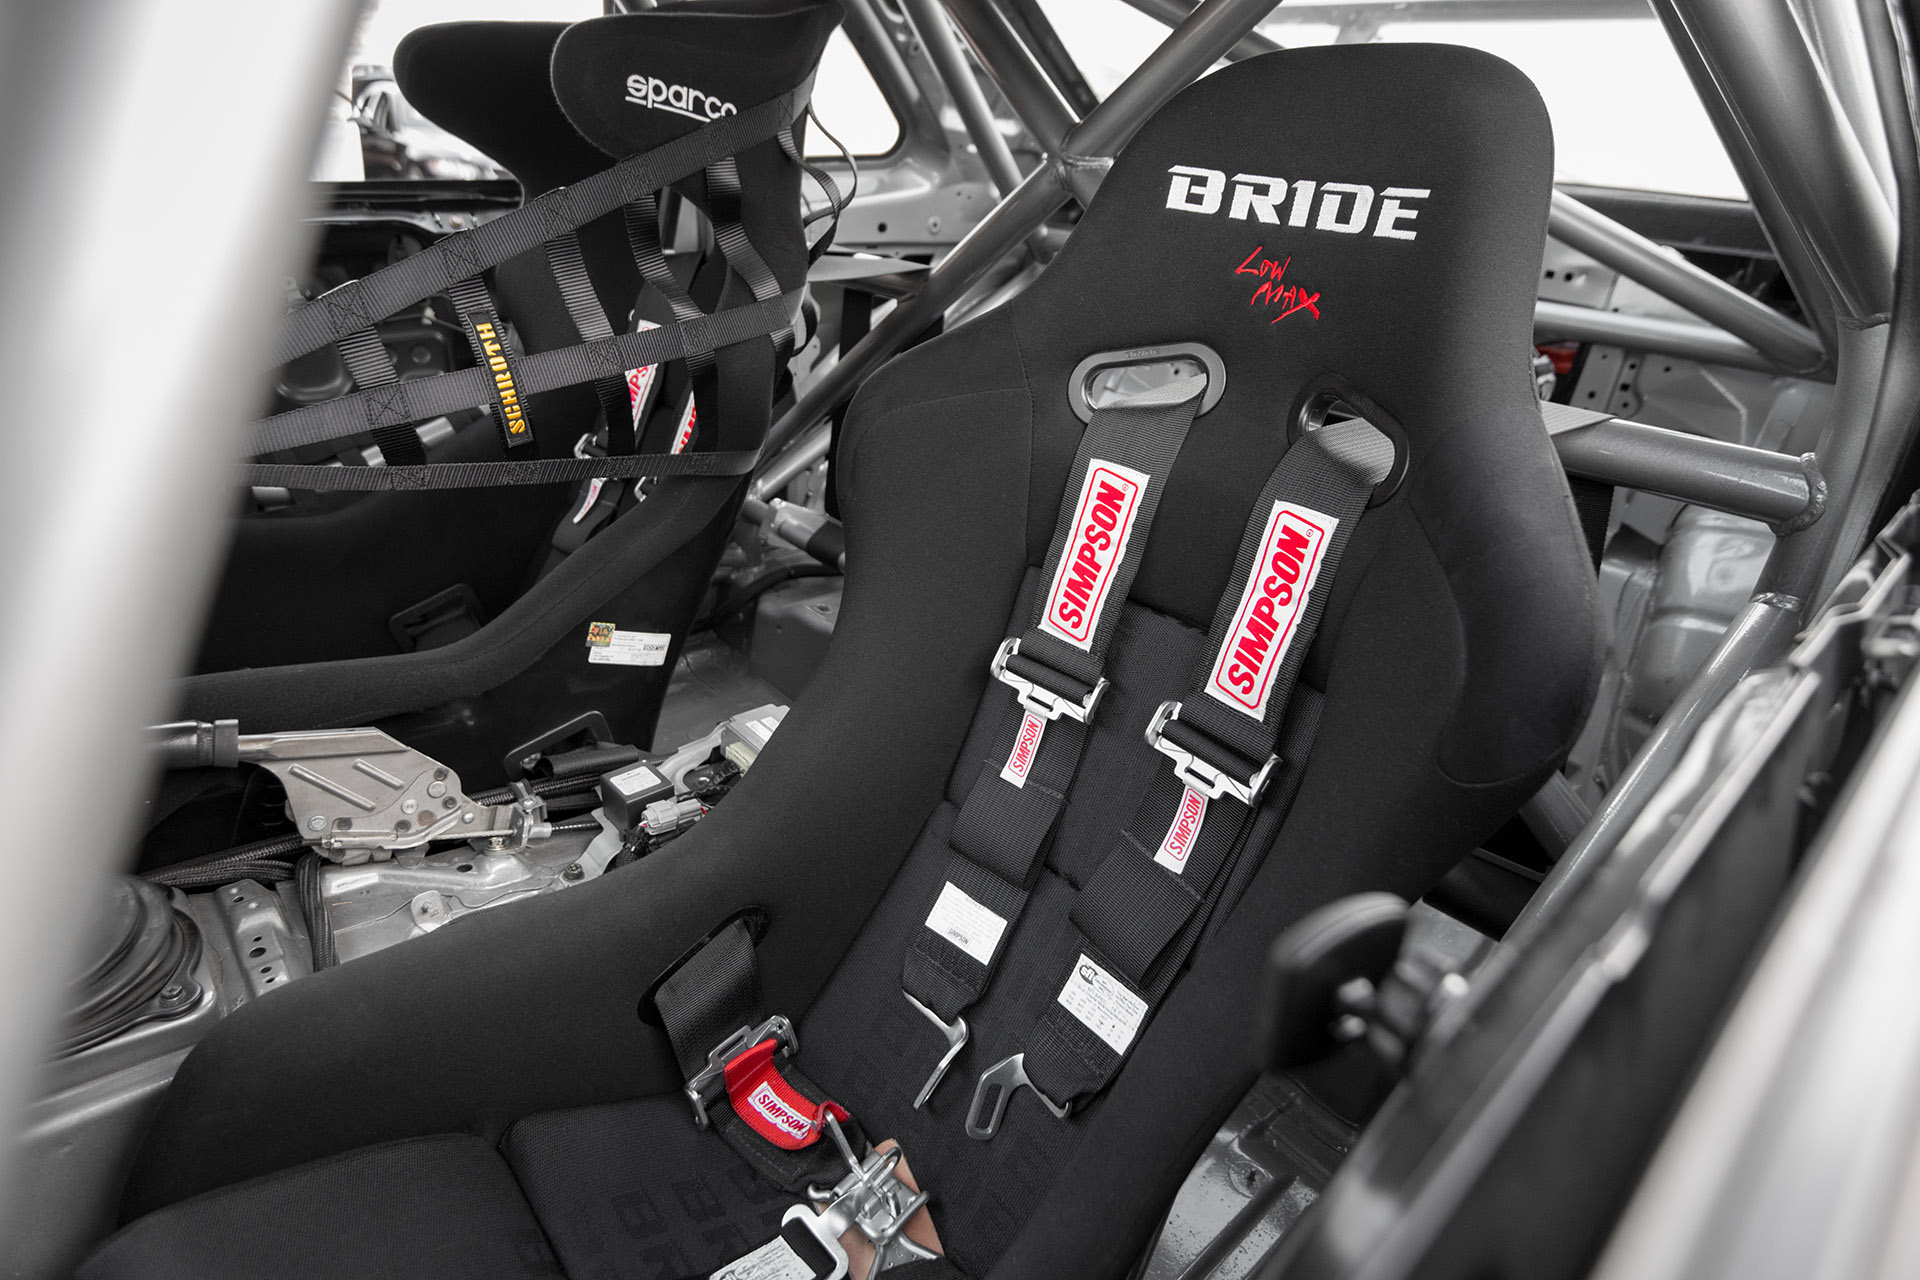 R34 Nissan Skyline GT R Race Car Interior Bride Seats Harnesses Roll Cage By Kyle